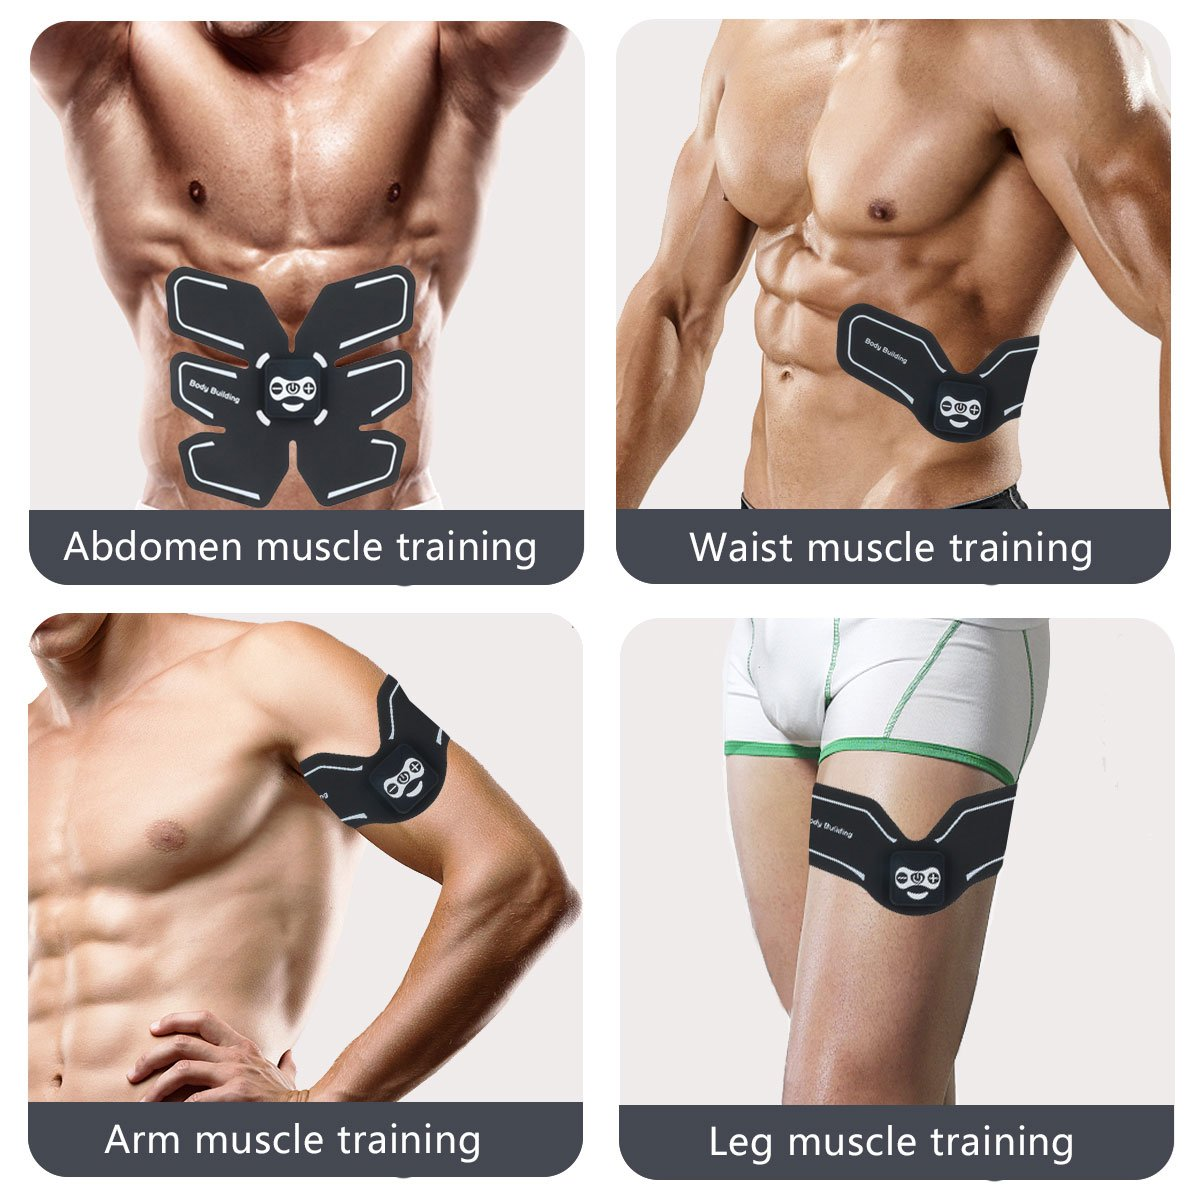 JIRUN Abs Stimulator Muscle Trainer Ultimate Abs Stimulator Ab Stimulator for Men Women Abdominal Work Out Ads Power Fitness Abs Muscle Training Gear Workout Equipment Portable Stimulator Abs Belt